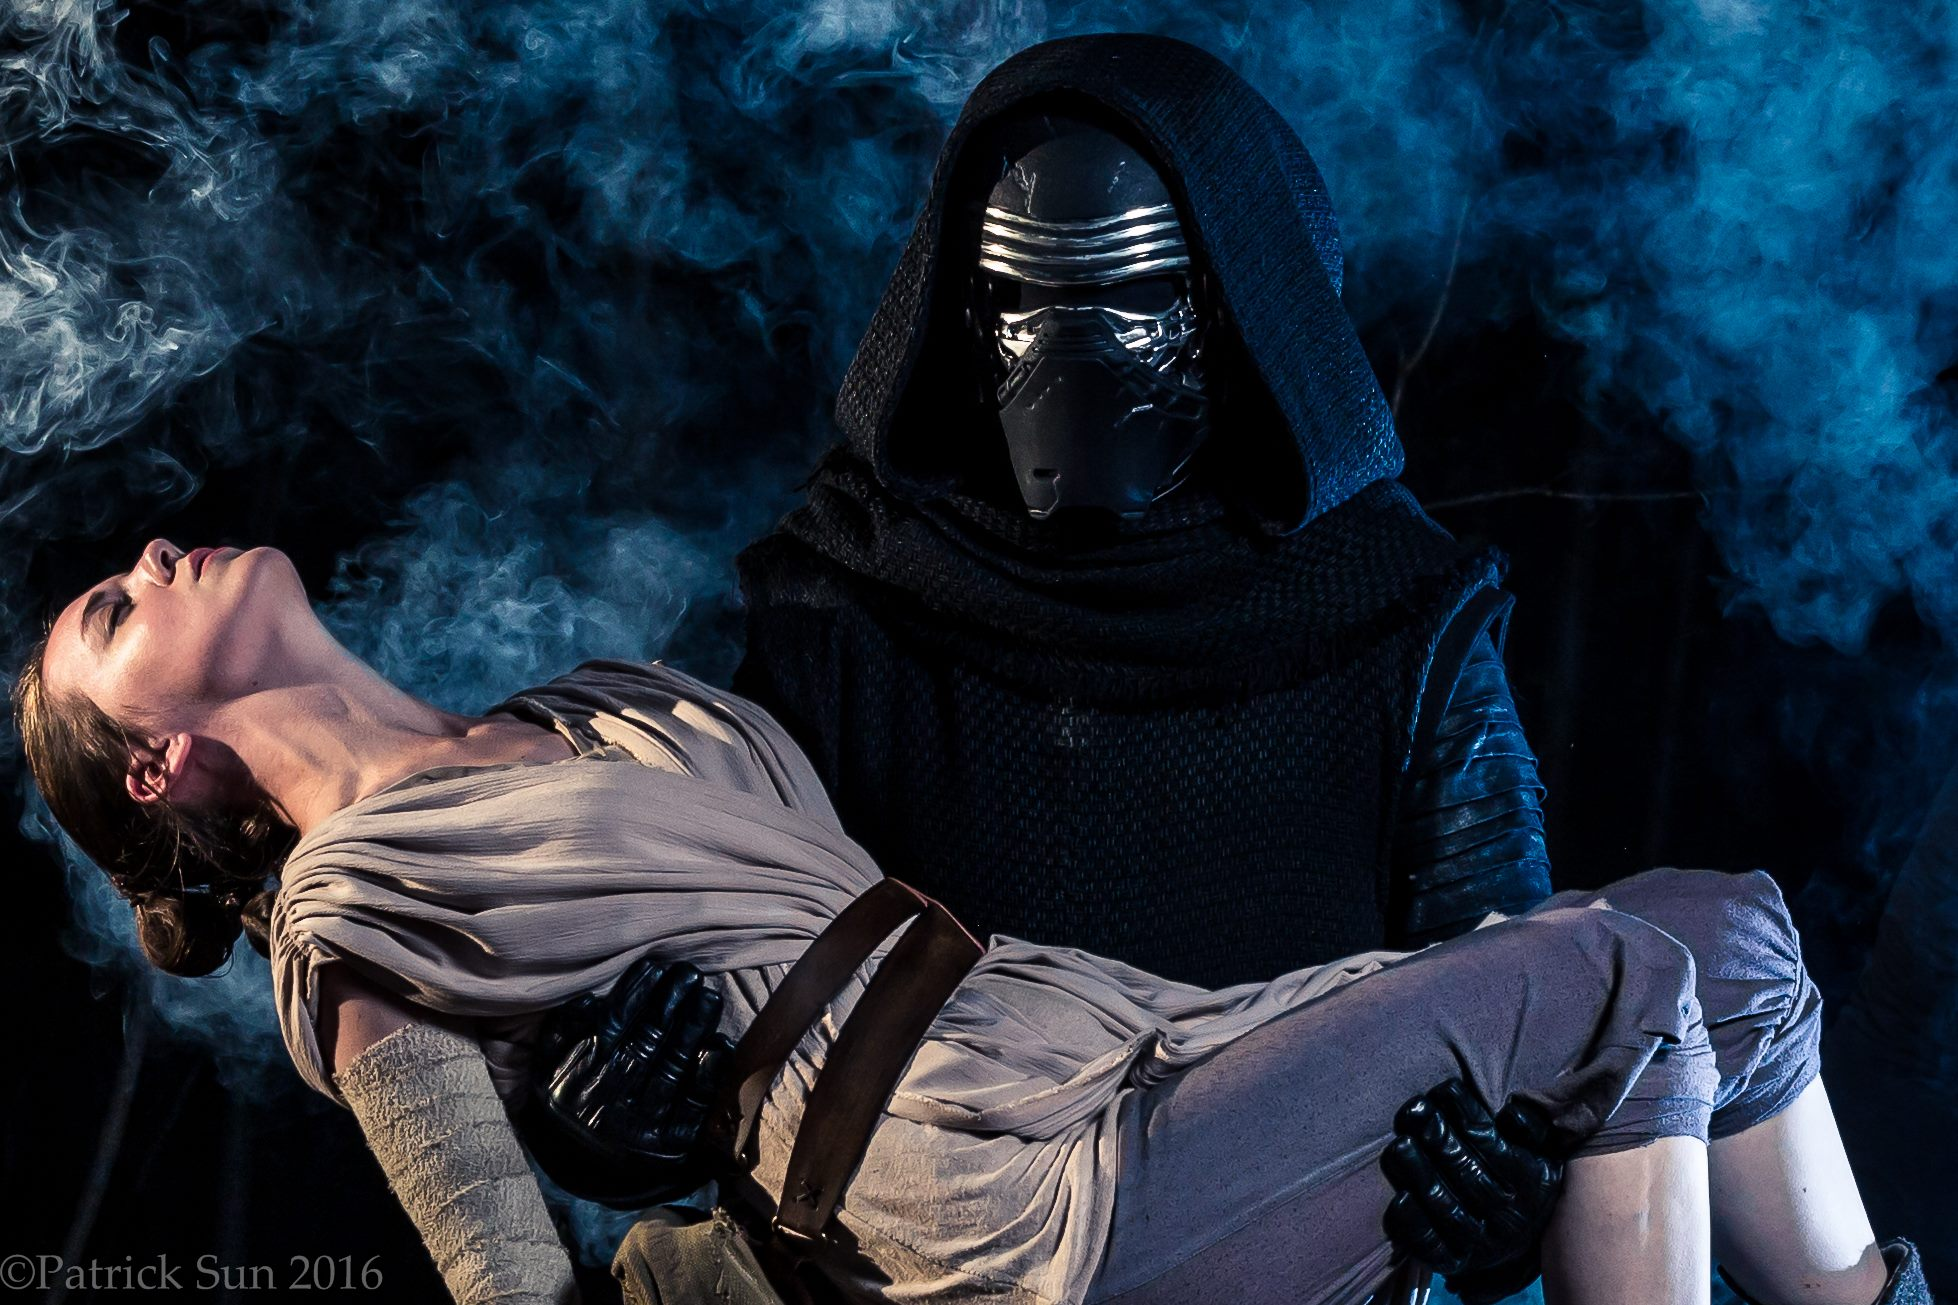 To Have and to Hold. Rey by The Lady Nerd and Kylo Ren by jeremy Berry. Photography by Patrick Sun.